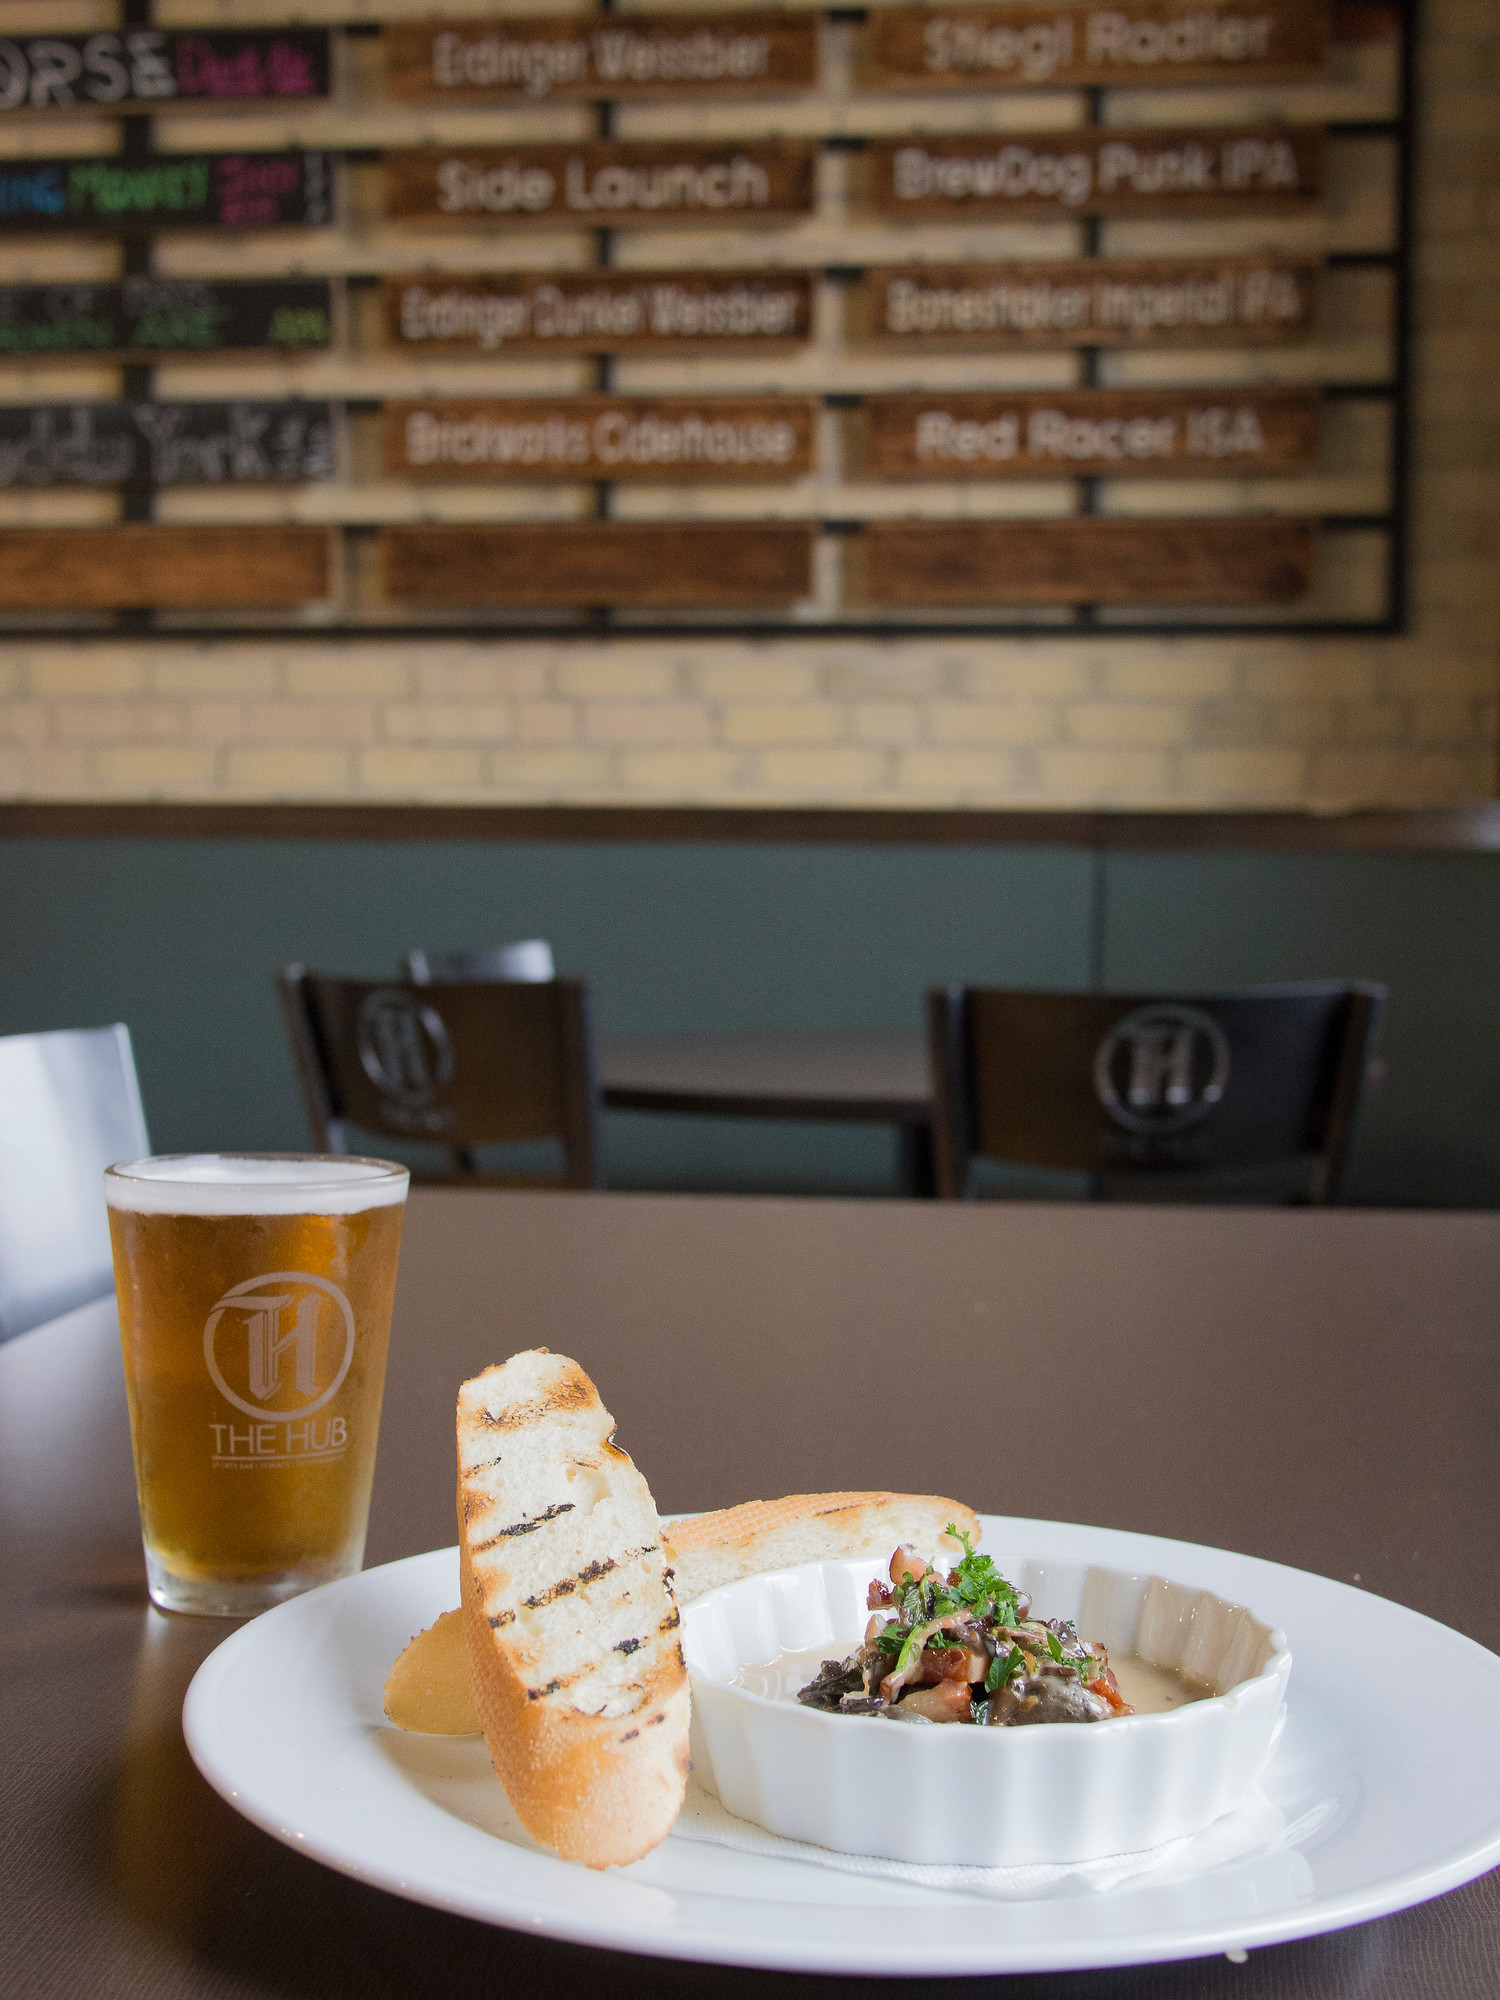 The Hub is one stop on the bacon and ale trail in Stratford Ontario, discover the other 12 stops.